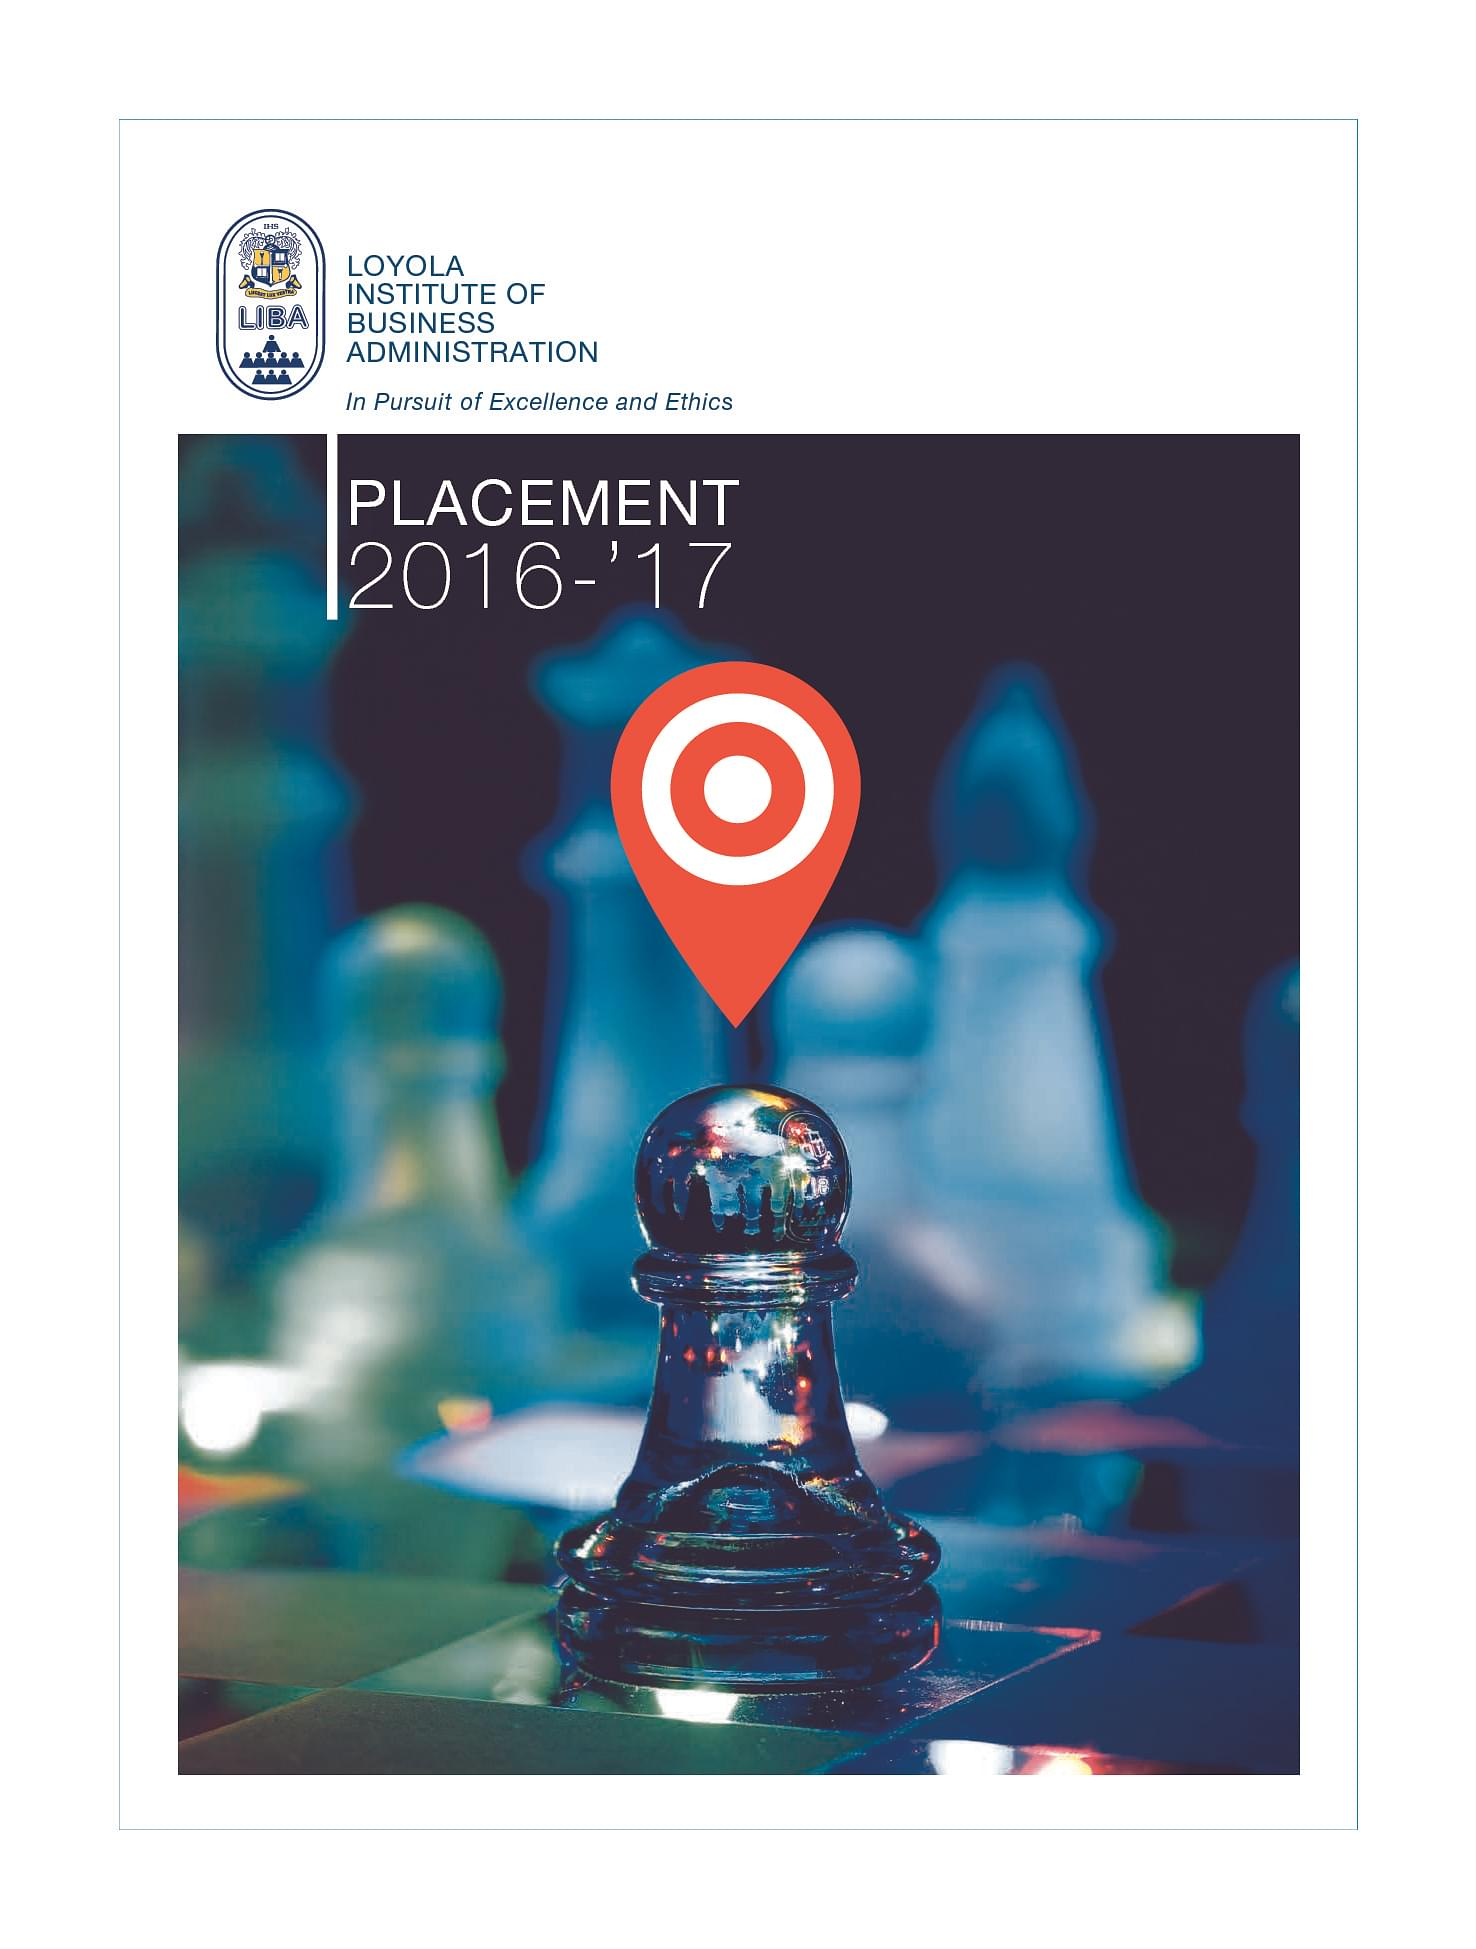 Loyola institute of business administration liba chennai loyola institute of business administration liba chennai placement brochure image 1 xflitez Image collections